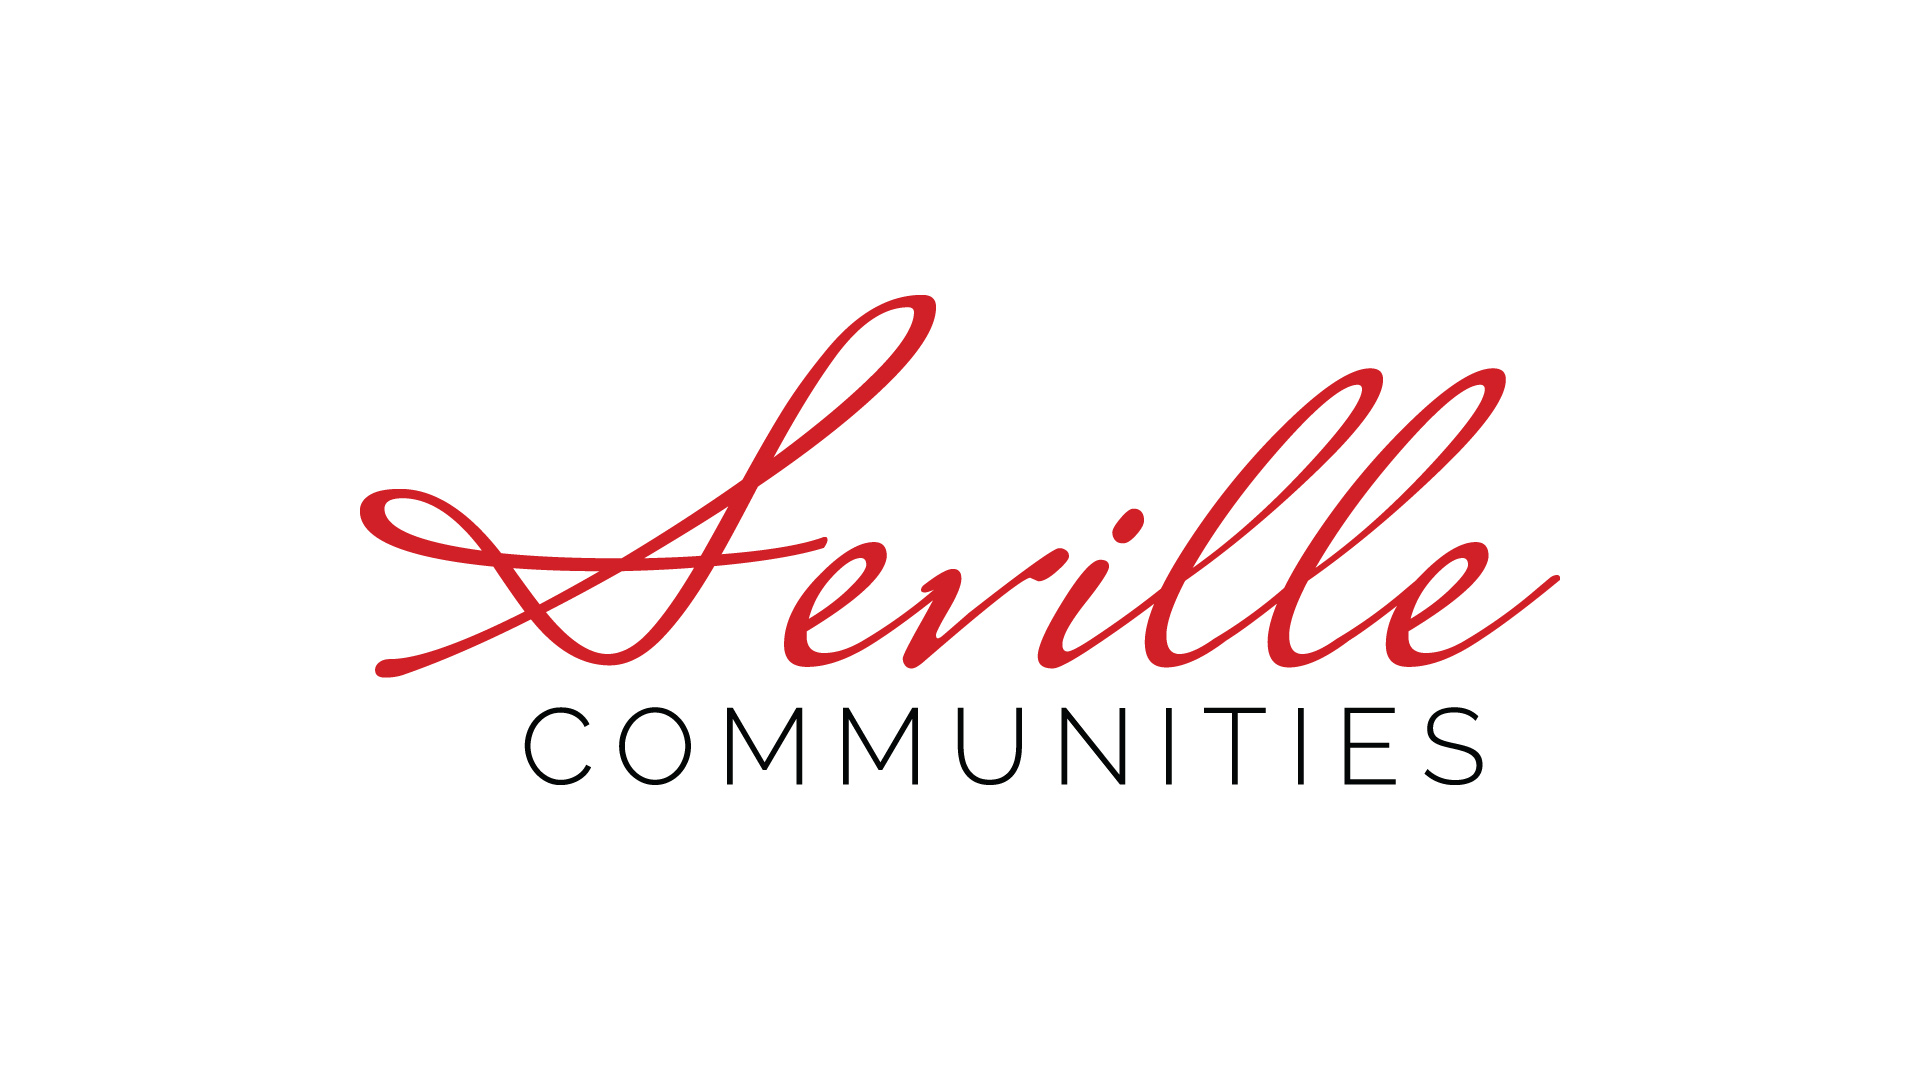 Seville Communities